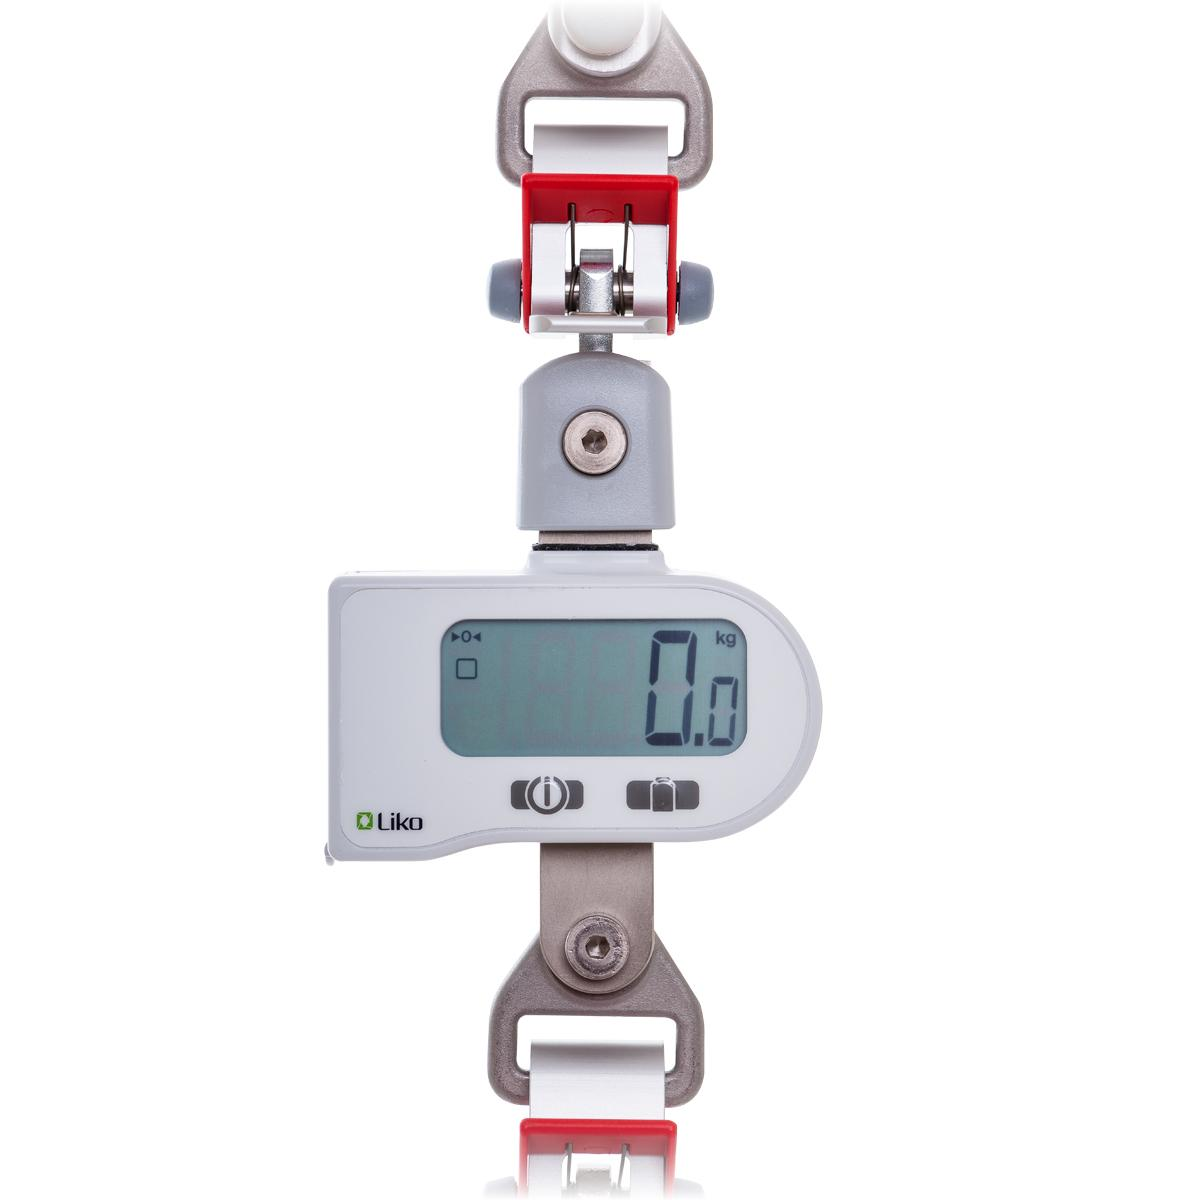 LikoScale reading 0.0 kg, front view